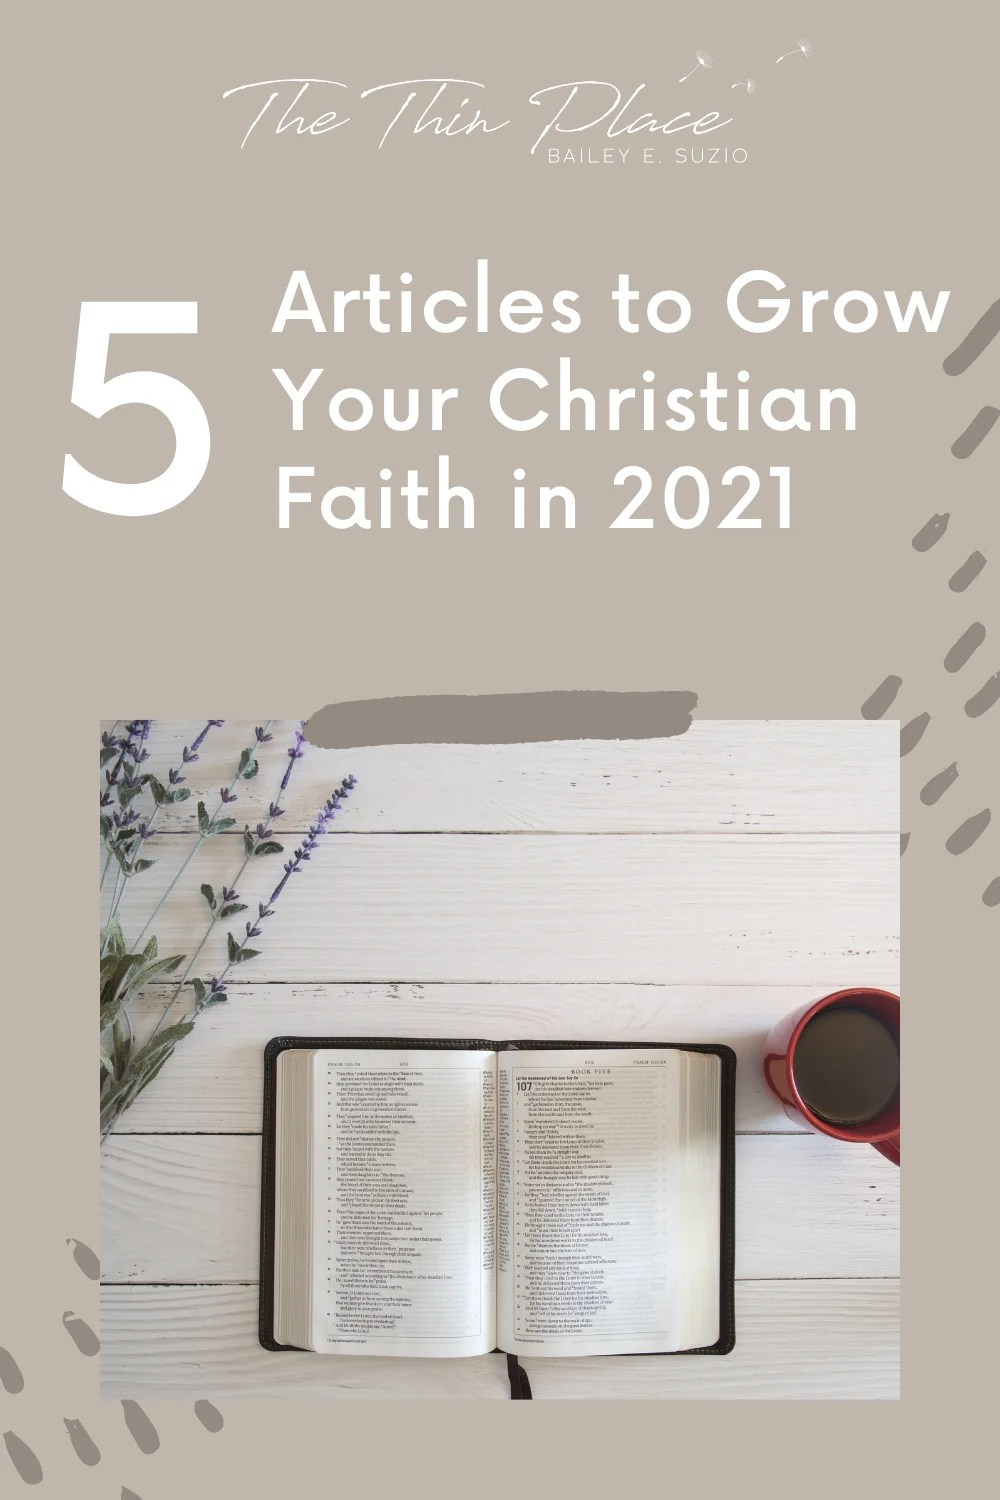 If you're looking to make major spiritual growth this year, here are 5 articles to get you on the right track! #christiandevotions #christianwomen #christianfaith